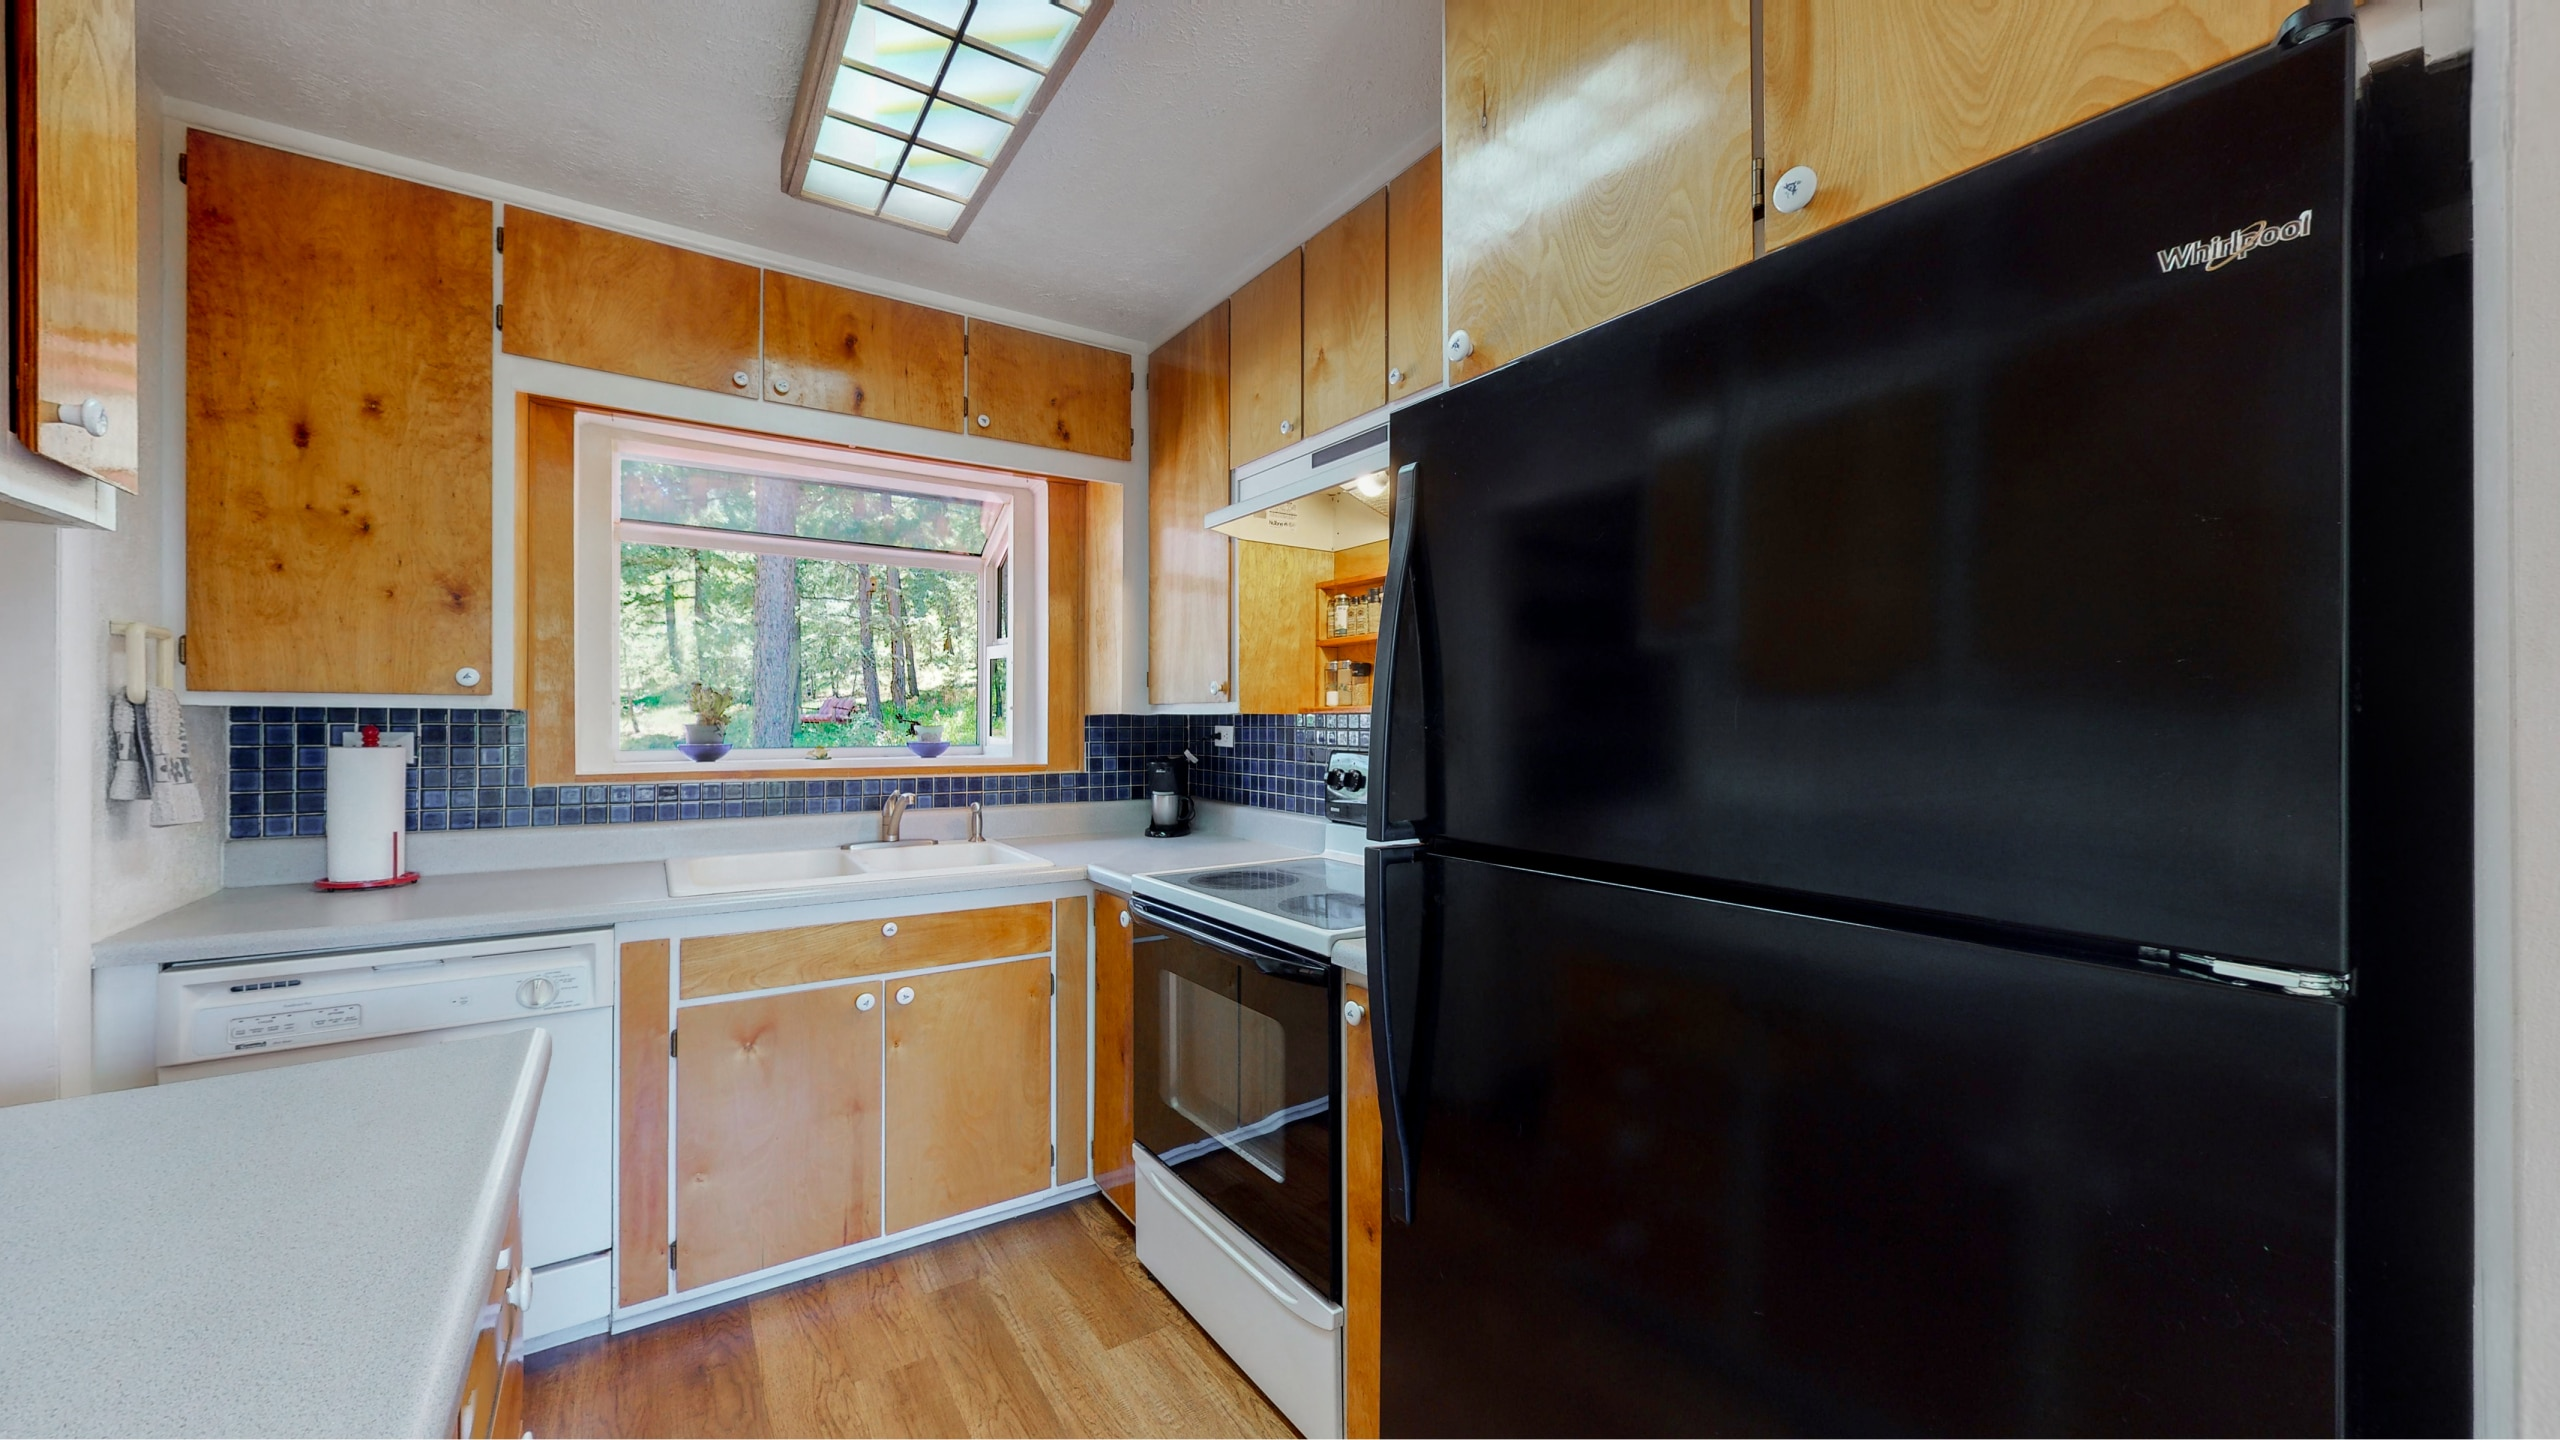 Wood cabinets with large bay window in kitchen home for sale